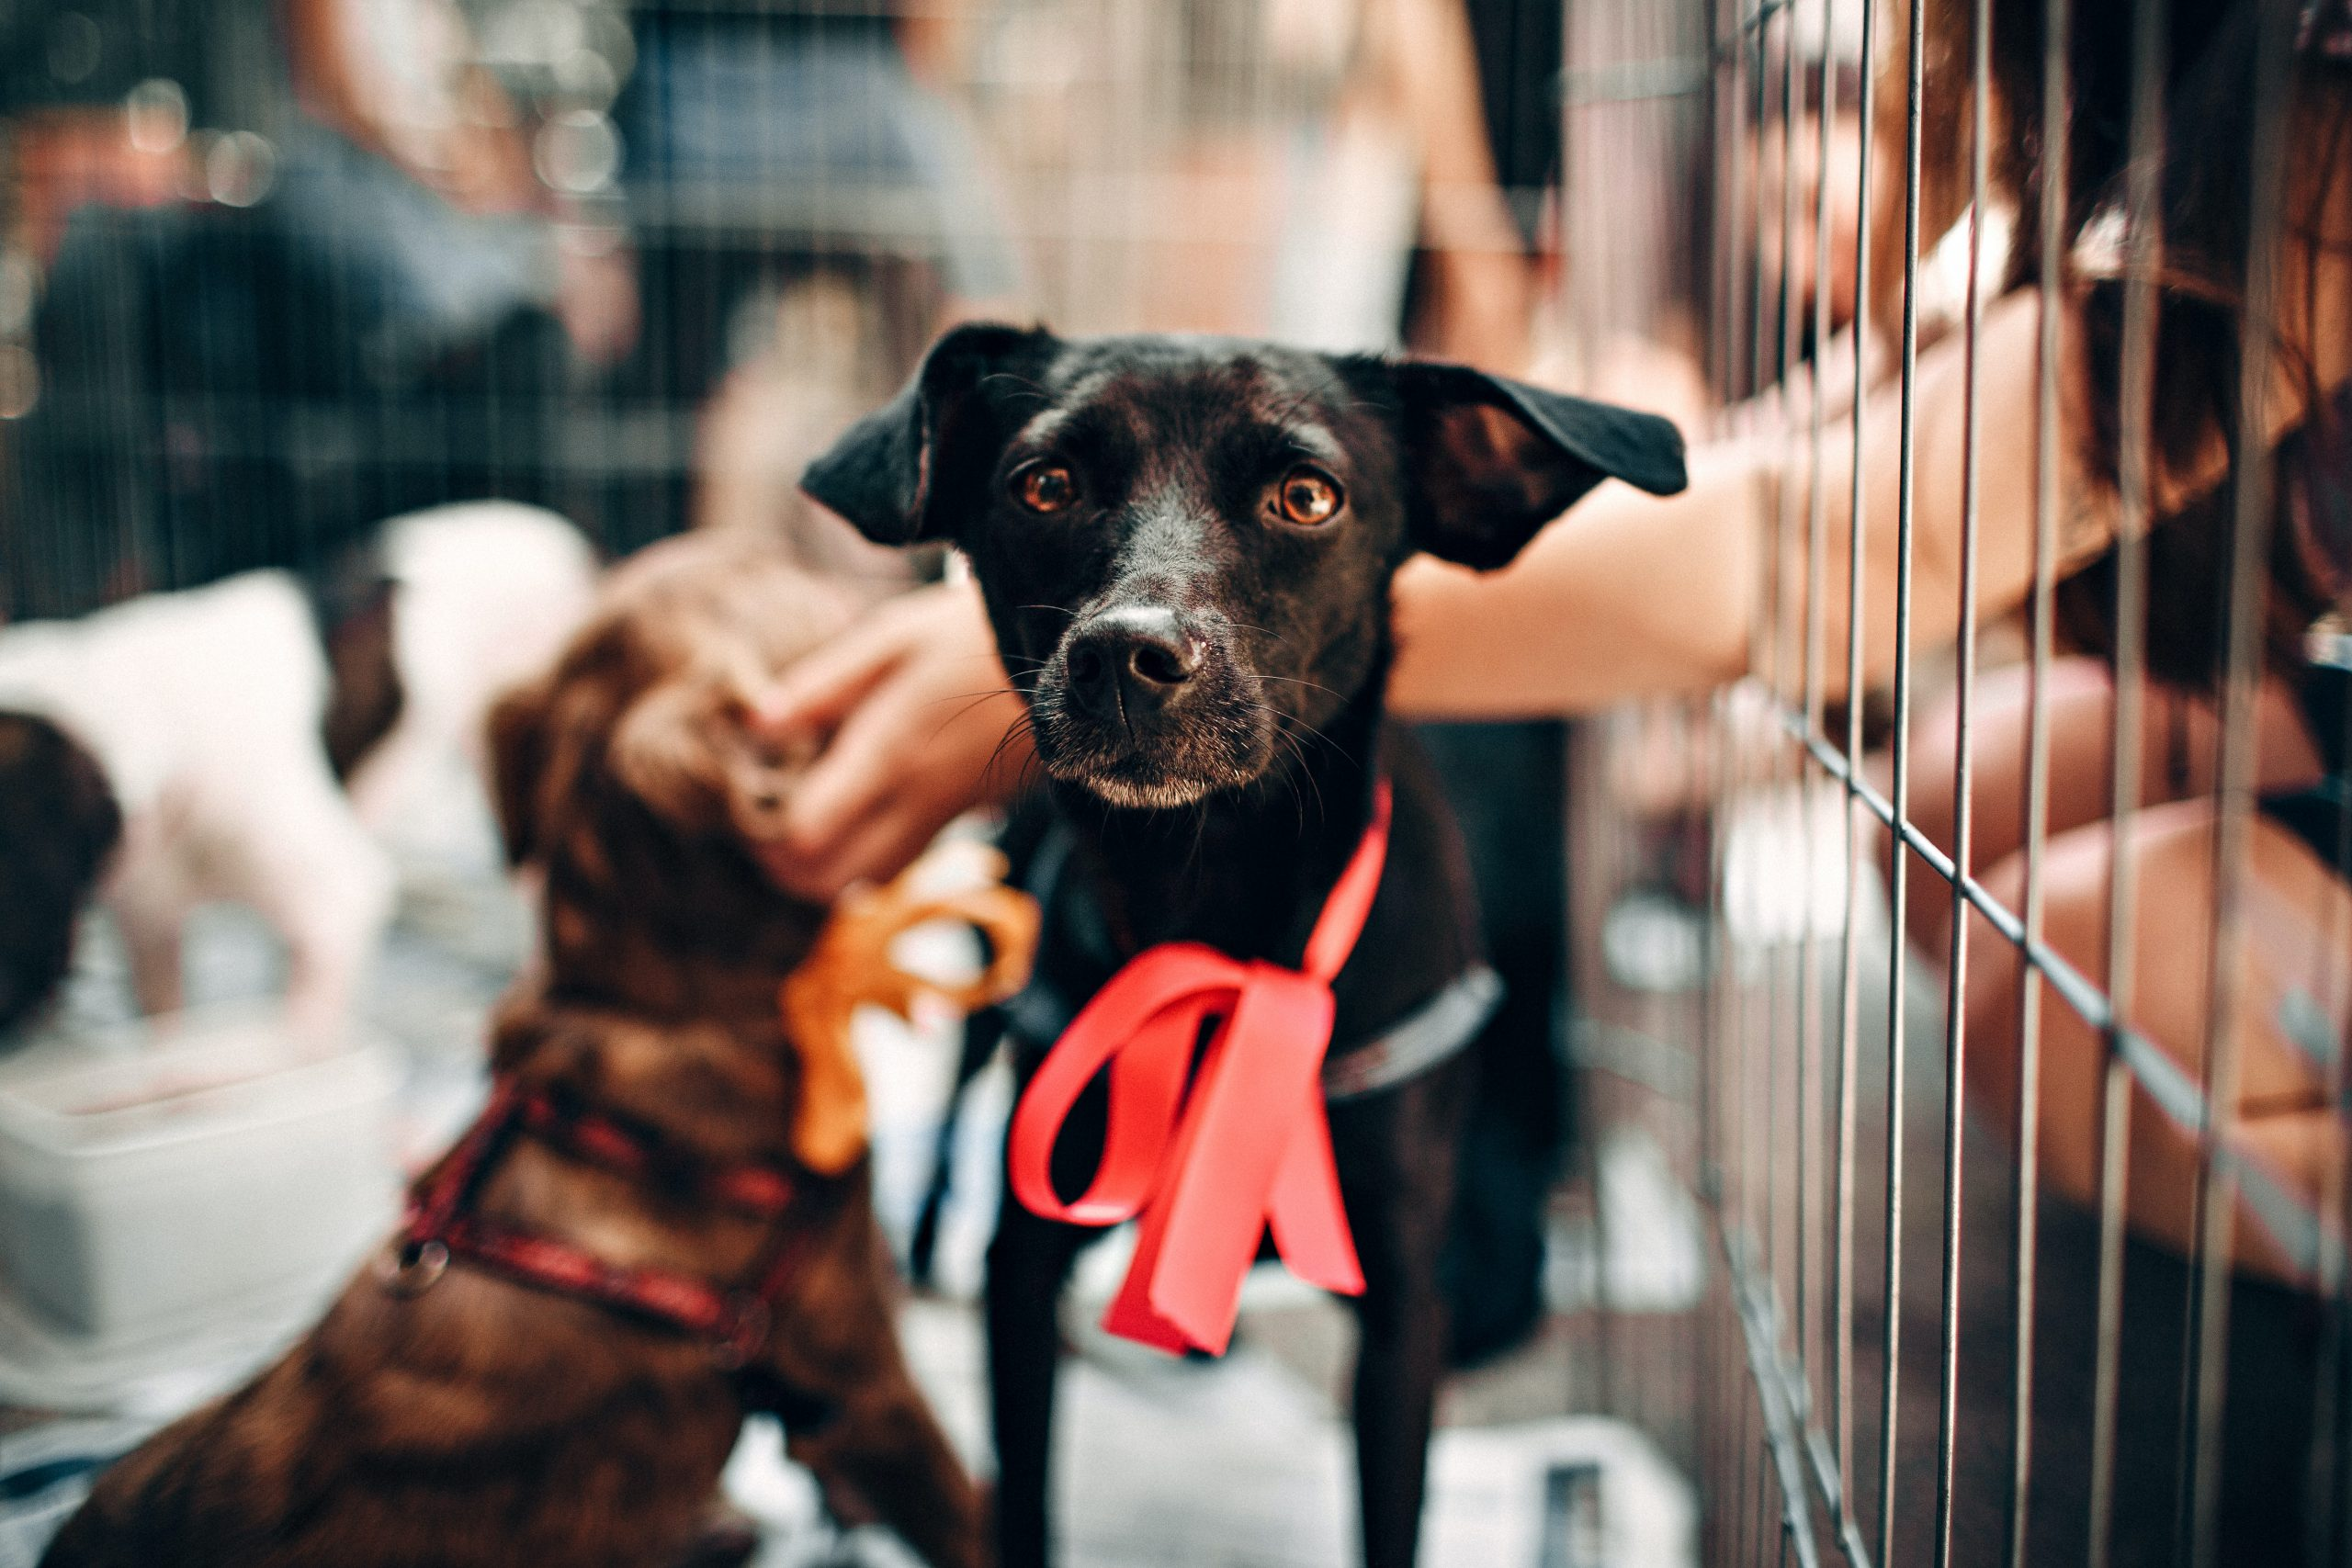 Picking The Right Type and Size Crate For Your Dog